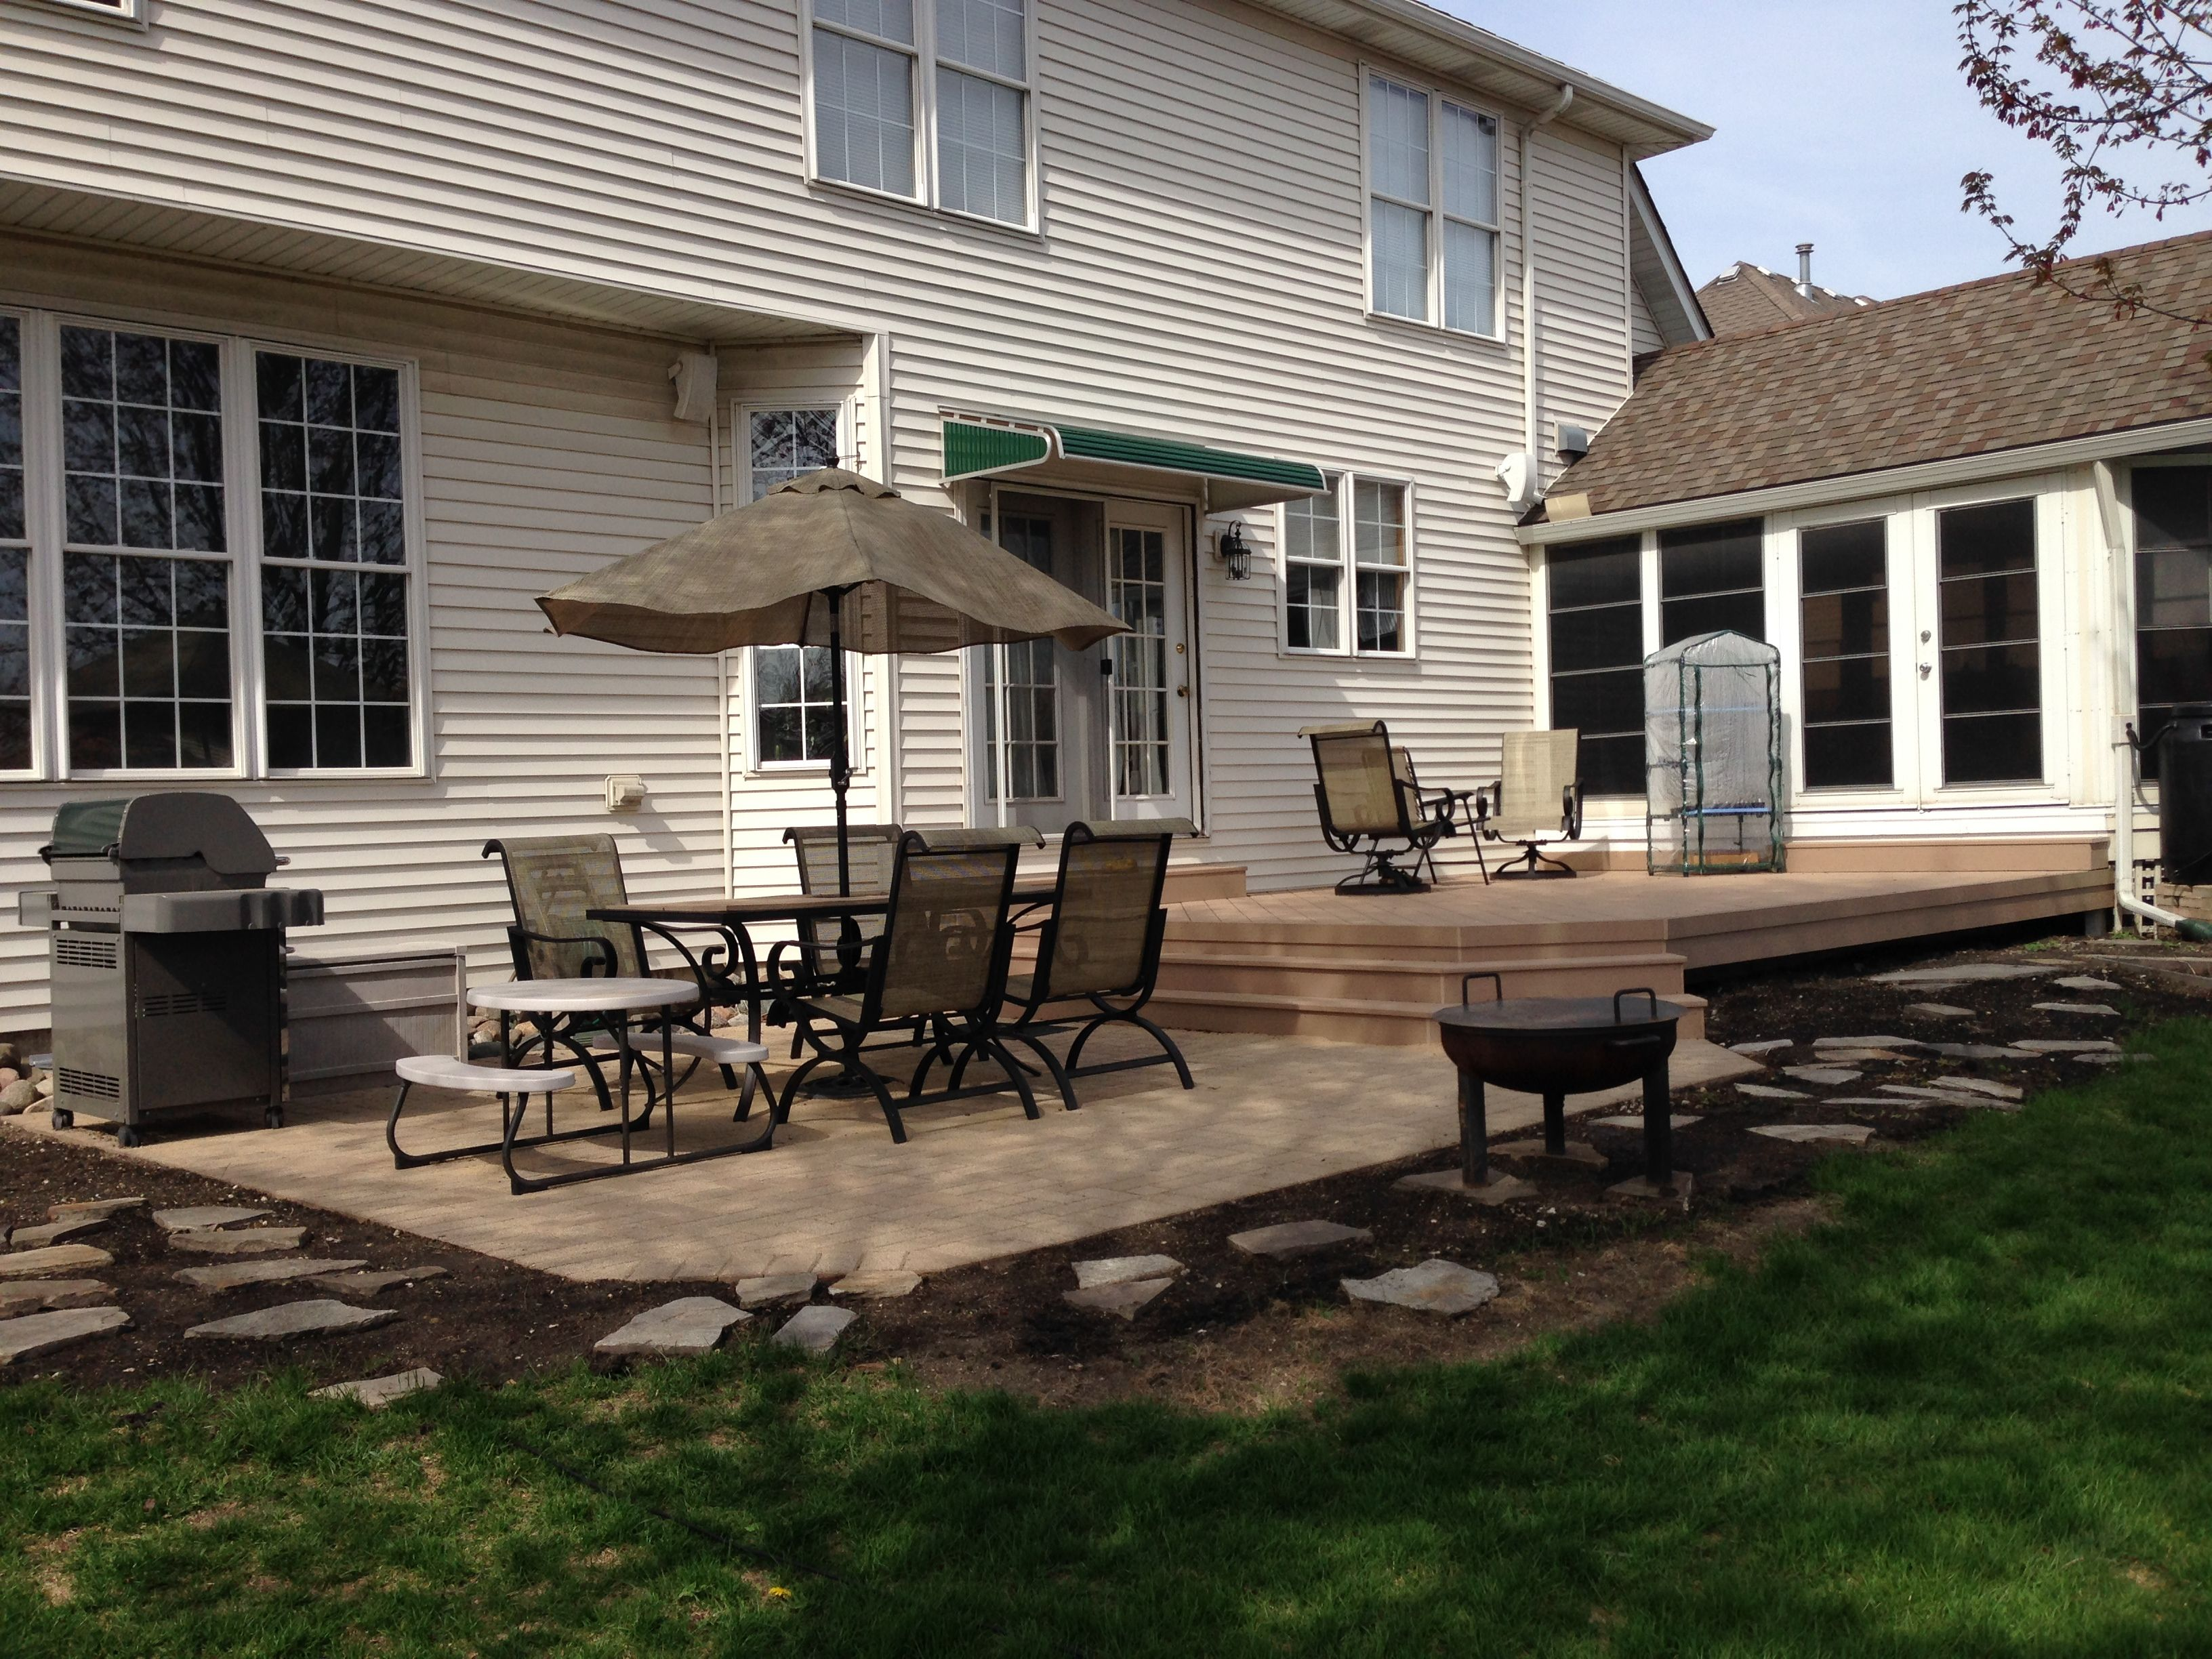 Square Patio Design By St. Charles, IL Patio Builder   Design Ideas    Archadeck